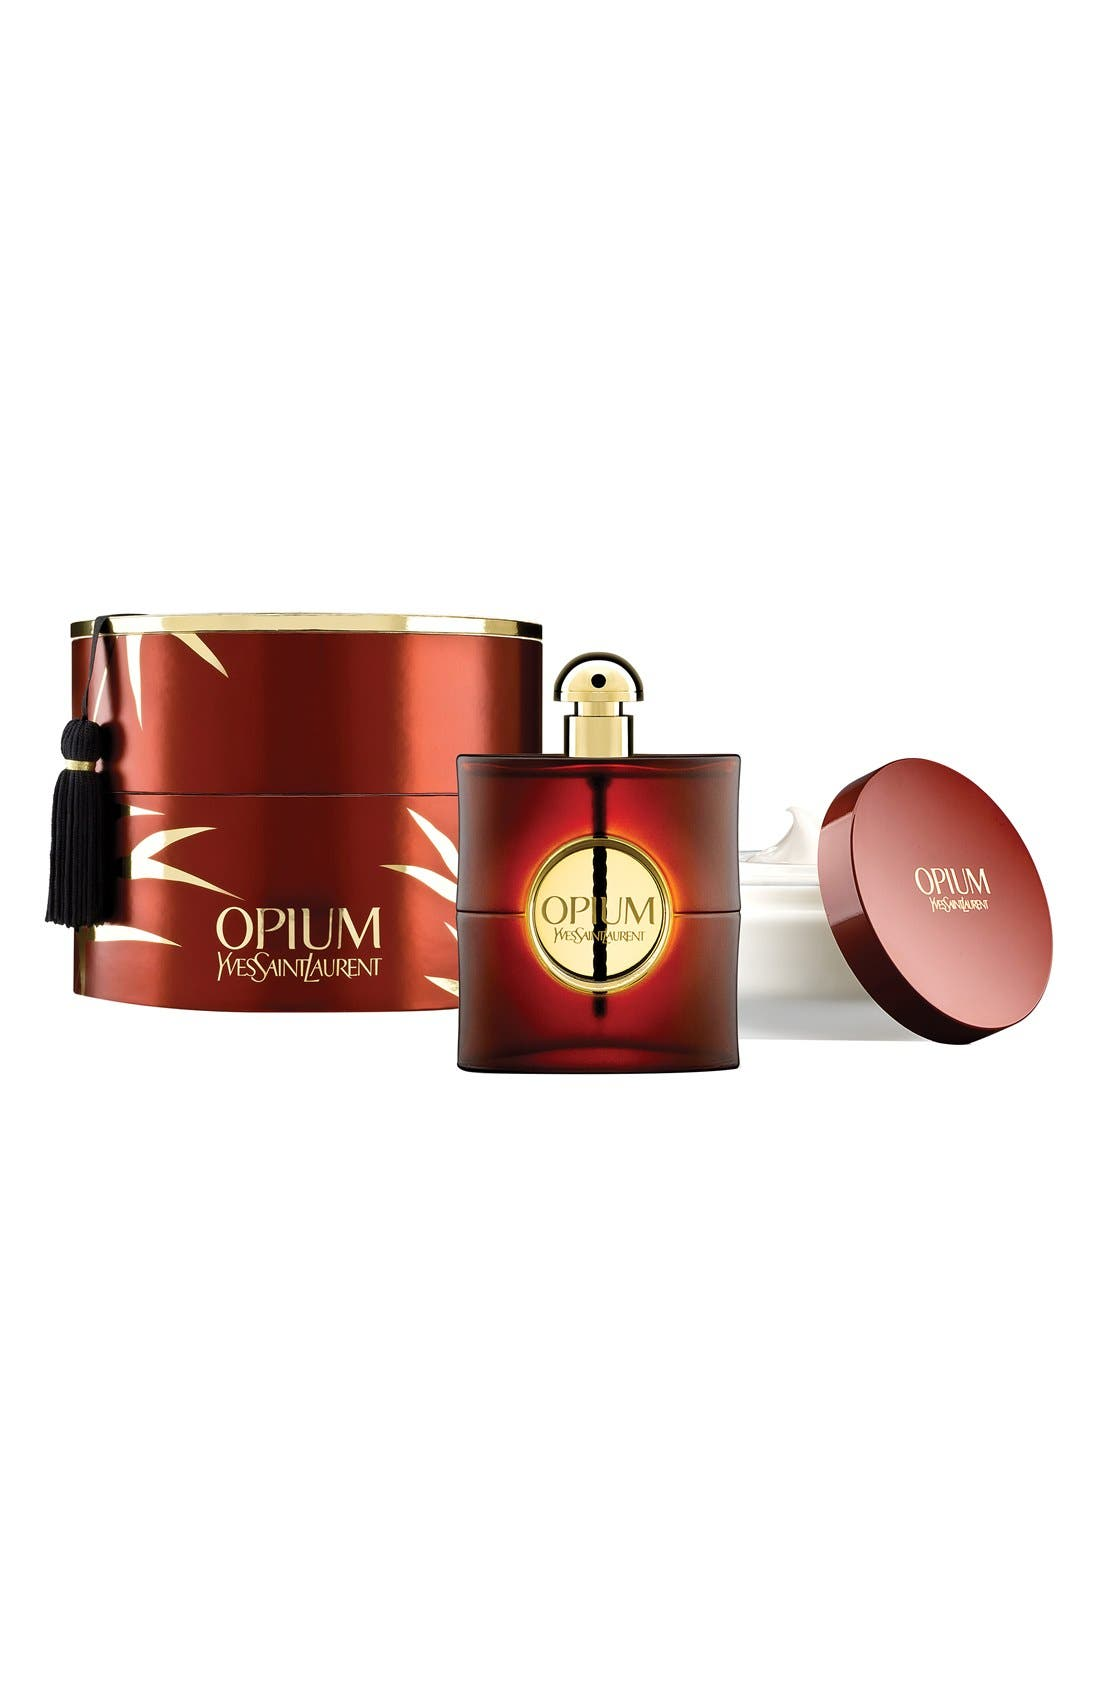 Yves Saint Laurent 'Opium' Eau de Parfum & Body Cream Set ($192 Value)